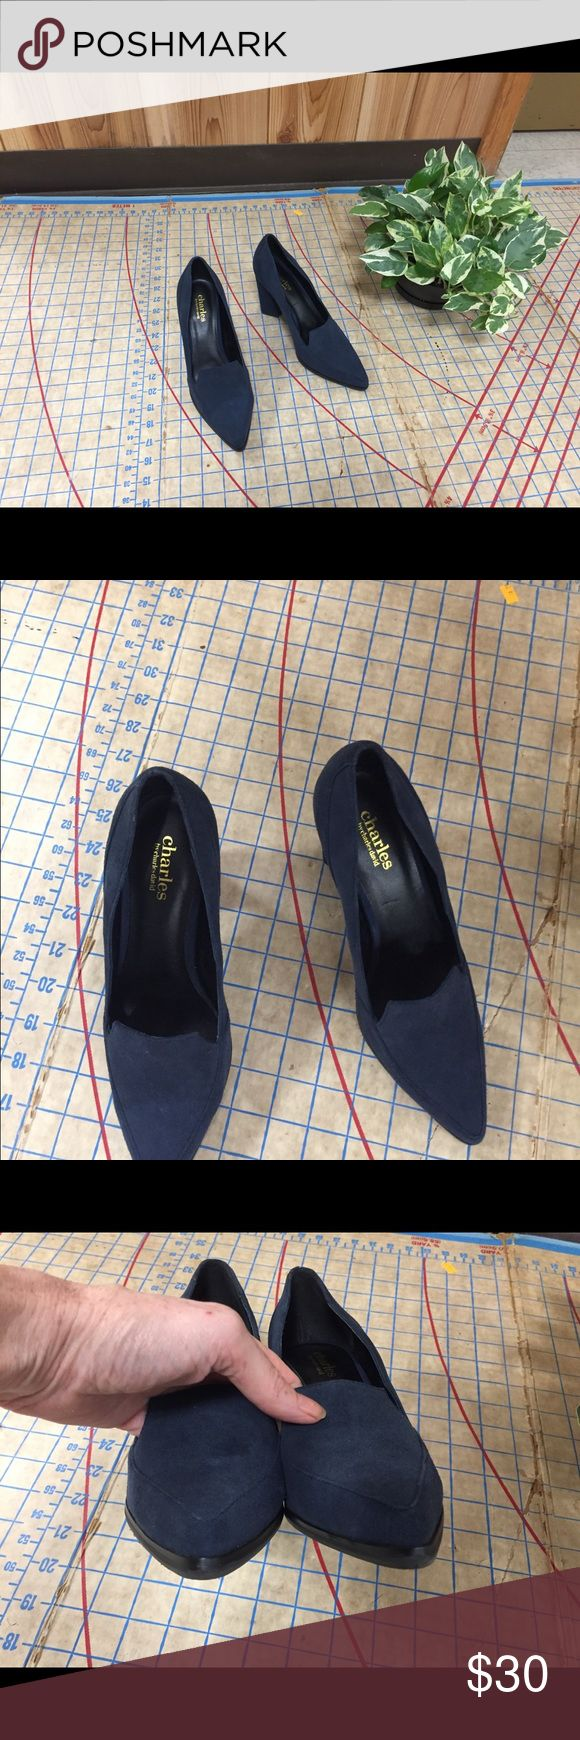 """Charles David blue suede heeled loafers size 6.5 In excellent condition Charles by Charles David blue suede heeled loafers size 6.5. Worn very little. Added Goodyear sole for traction. Menswear inspired block heel loafer. 3"""" heel. Pointed toe and vamp. Block heel is sculptural and has a very unique look. No damage or defects to speak of. Fun and different shoe that would work for office or play. Perfect holiday blue. Charles David Shoes Heels"""